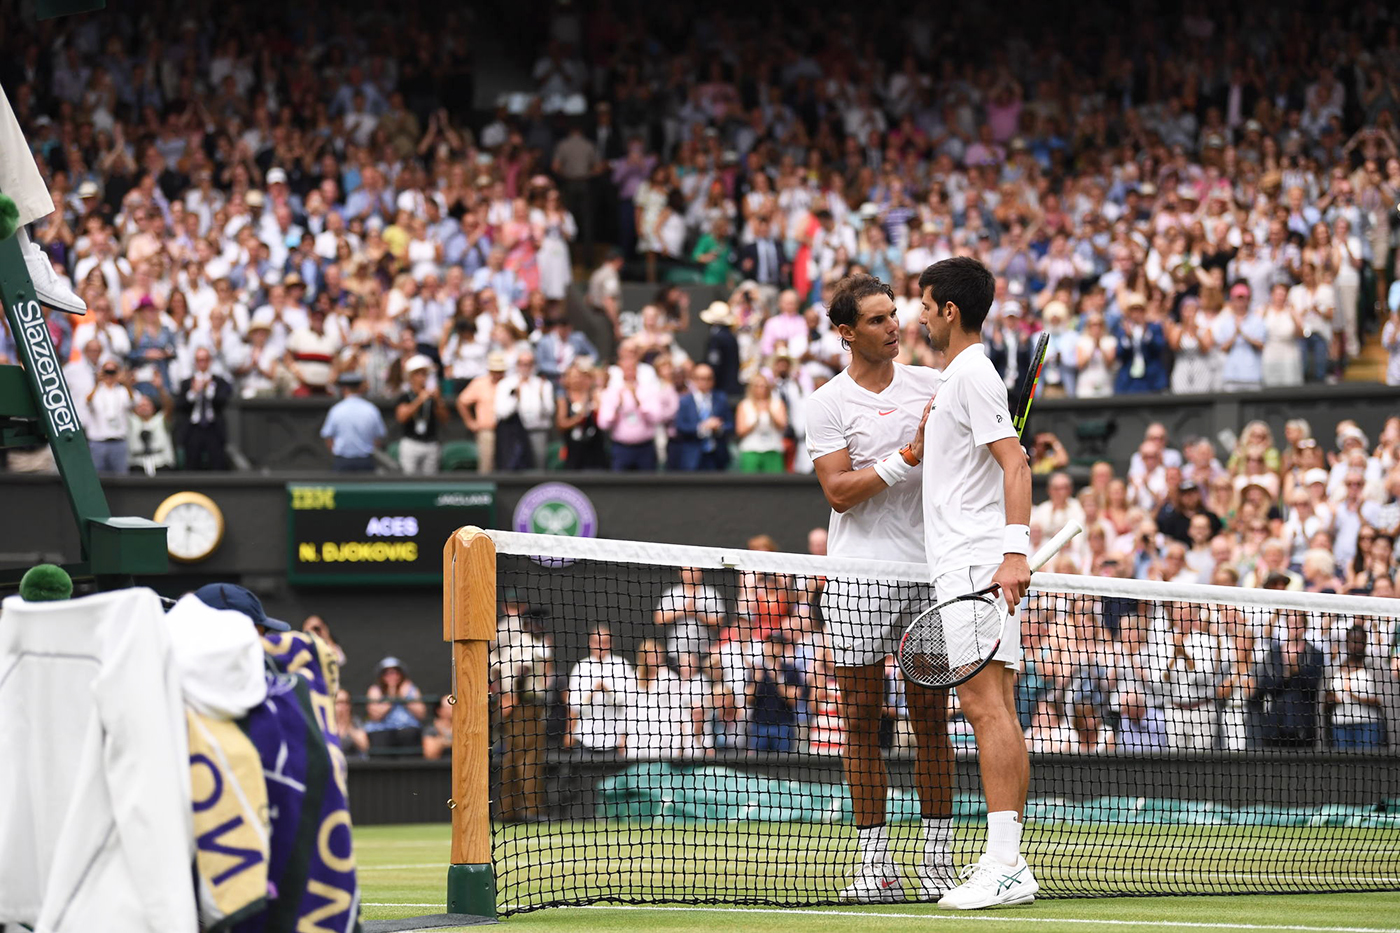 Novak Djokovic SRB v Rafael Nadal ESP in the semi final of the Gentlemen's Singles on Centre Court. The Championships 2018. Held at The All England Lawn Tennis Club, Wimbledon. Day 12 Saturday 14/07/2018. Credit: AELTC/Ben Solomon